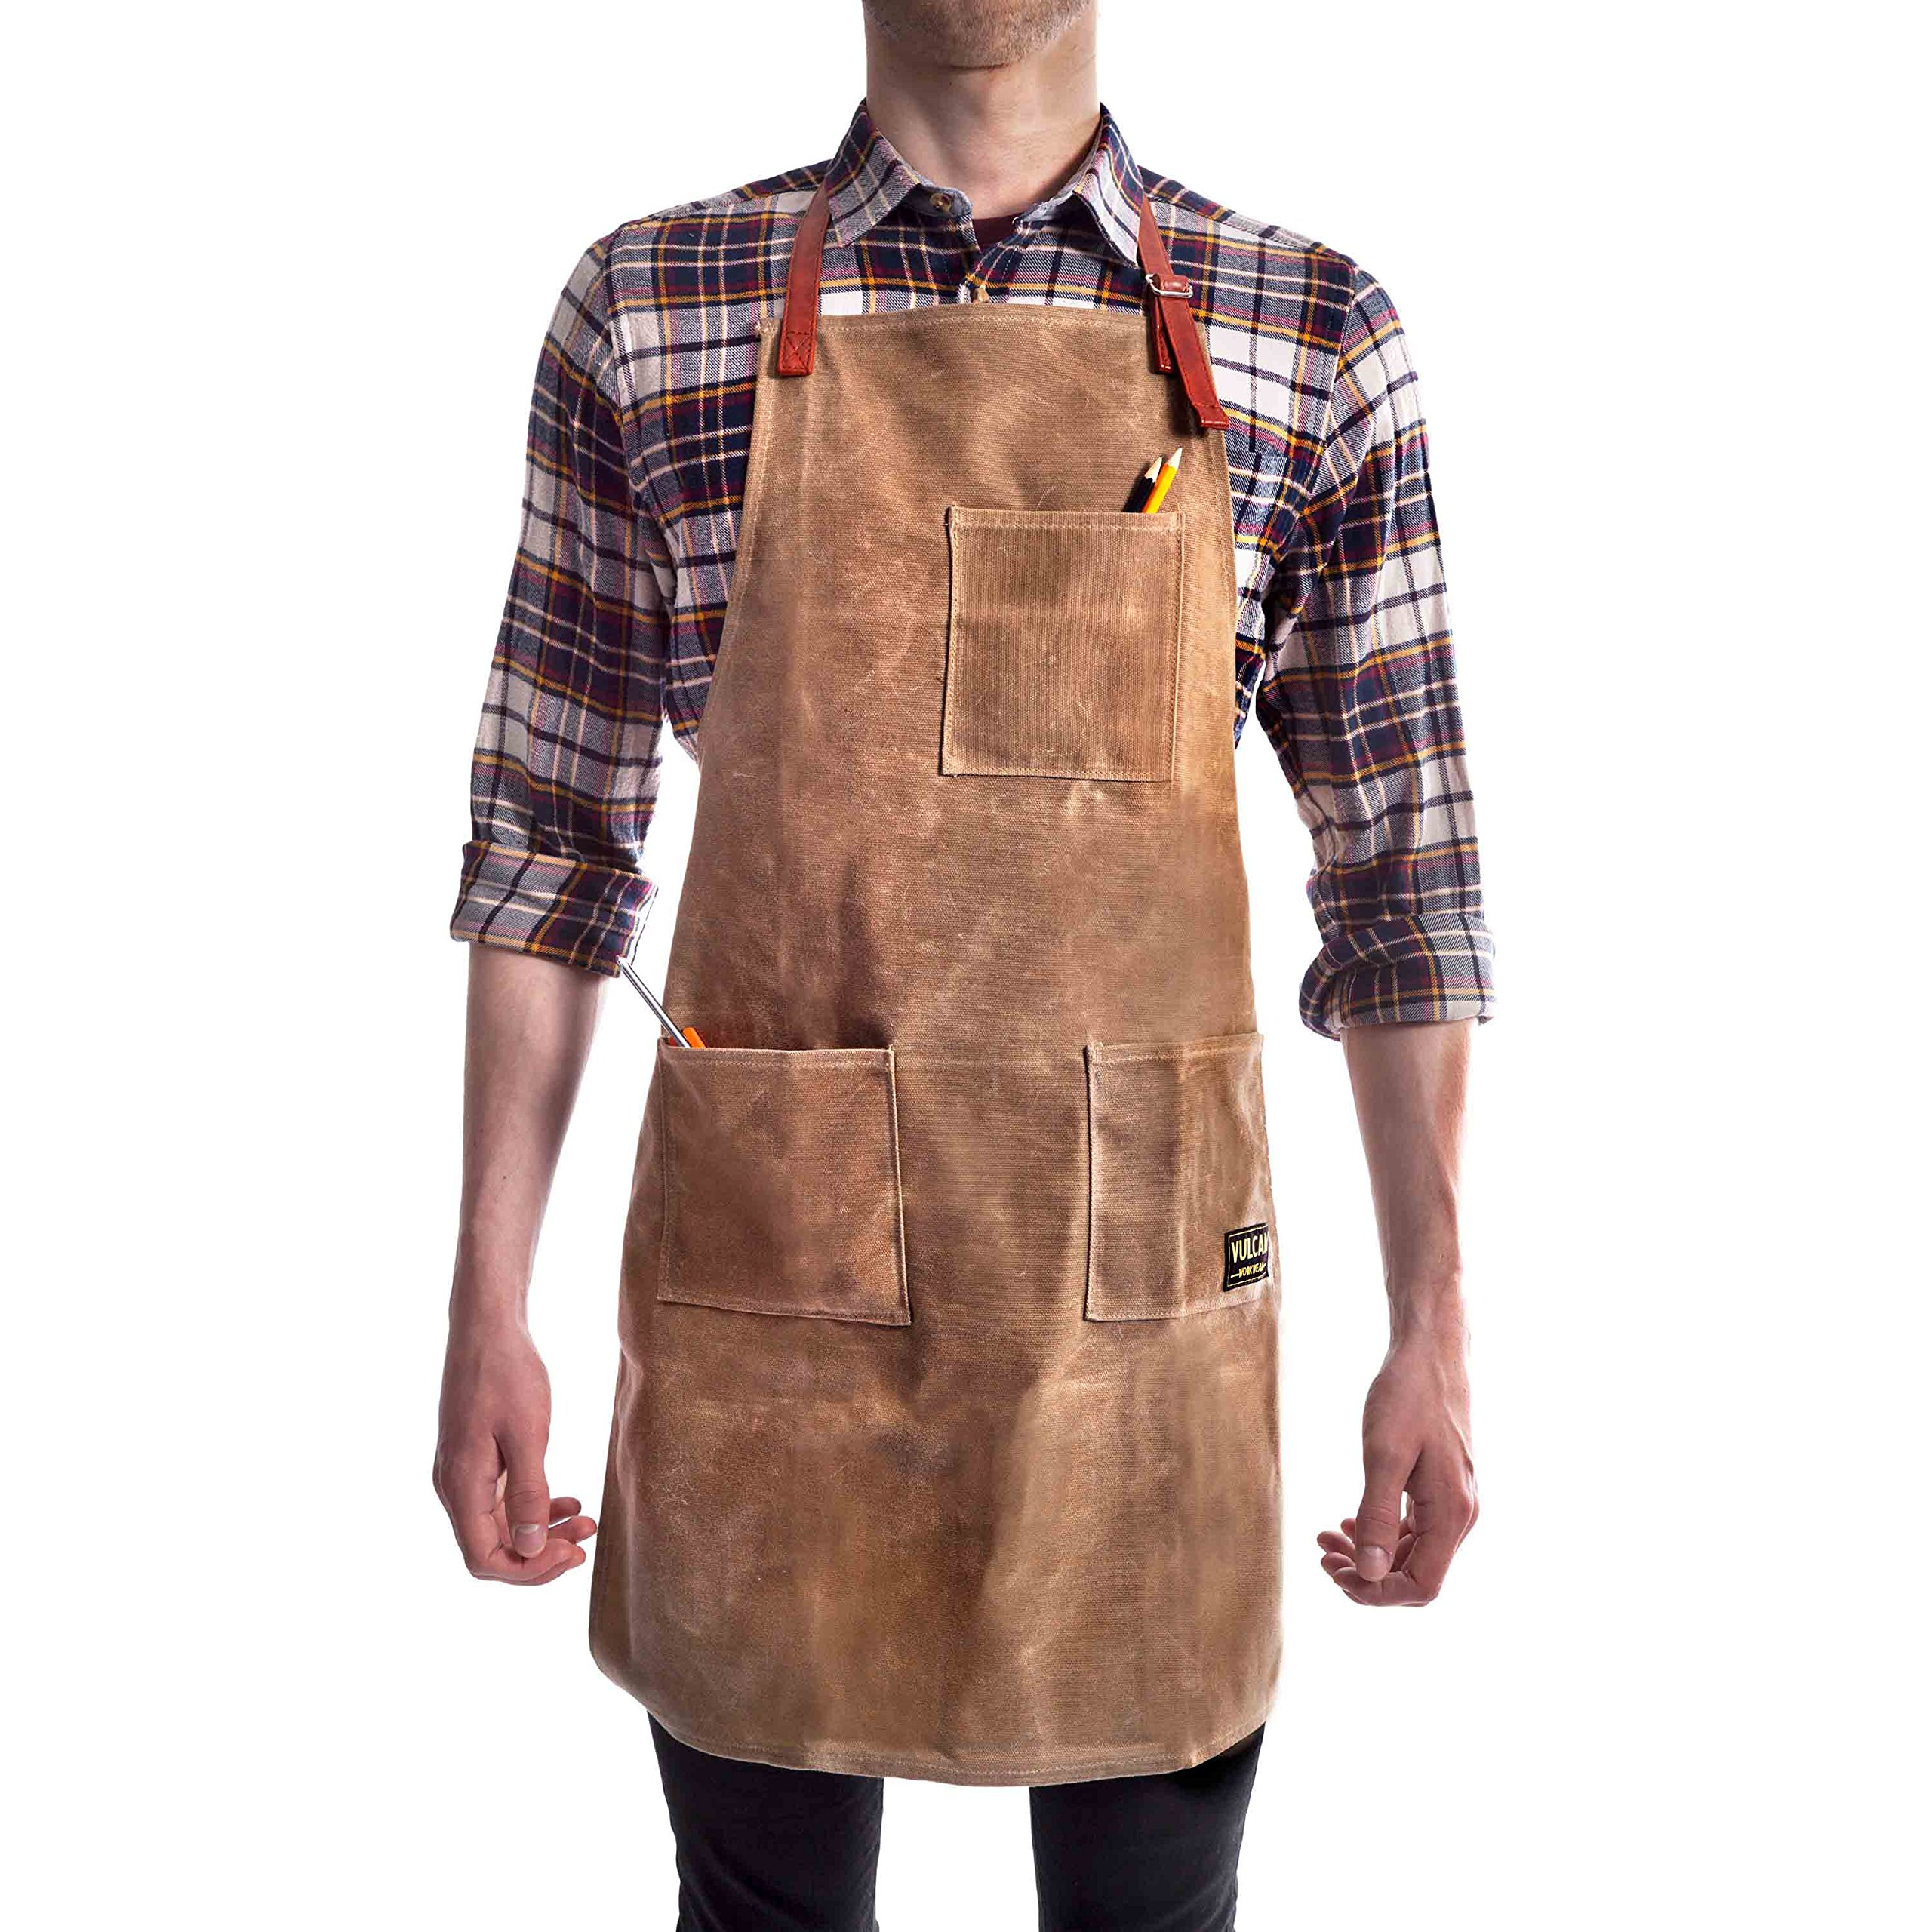 Vulcan Workwear Utility Apron - Multi-Use Shop Apron with Pockets - Waxed Canvas Tool Apron